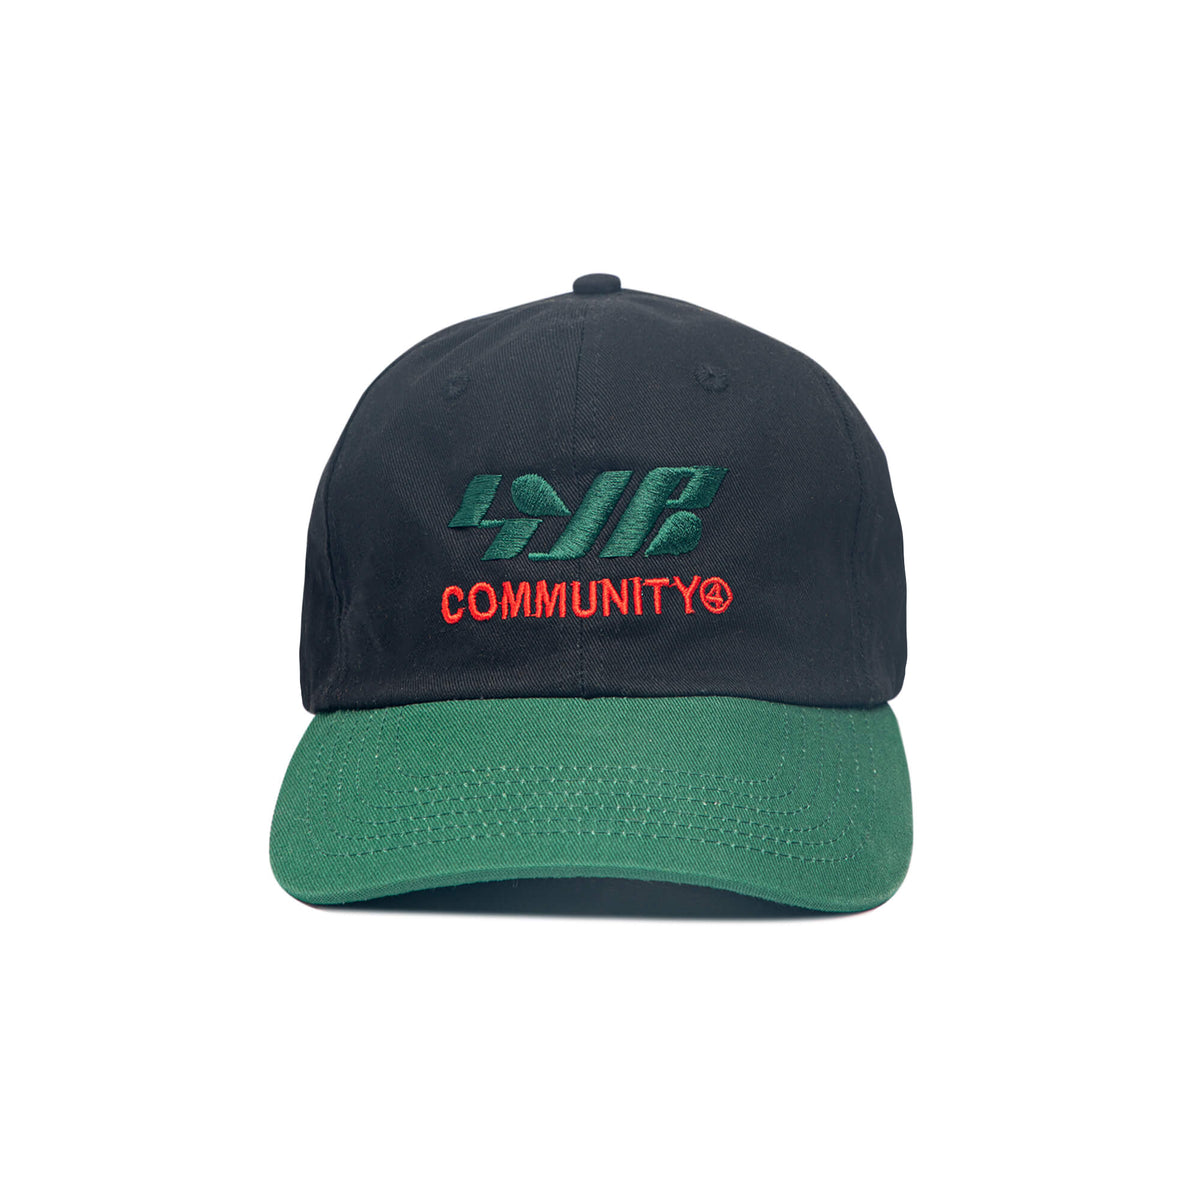 "<img src=""hat.jpg"" alt=""baseball cap with embroidery"">"